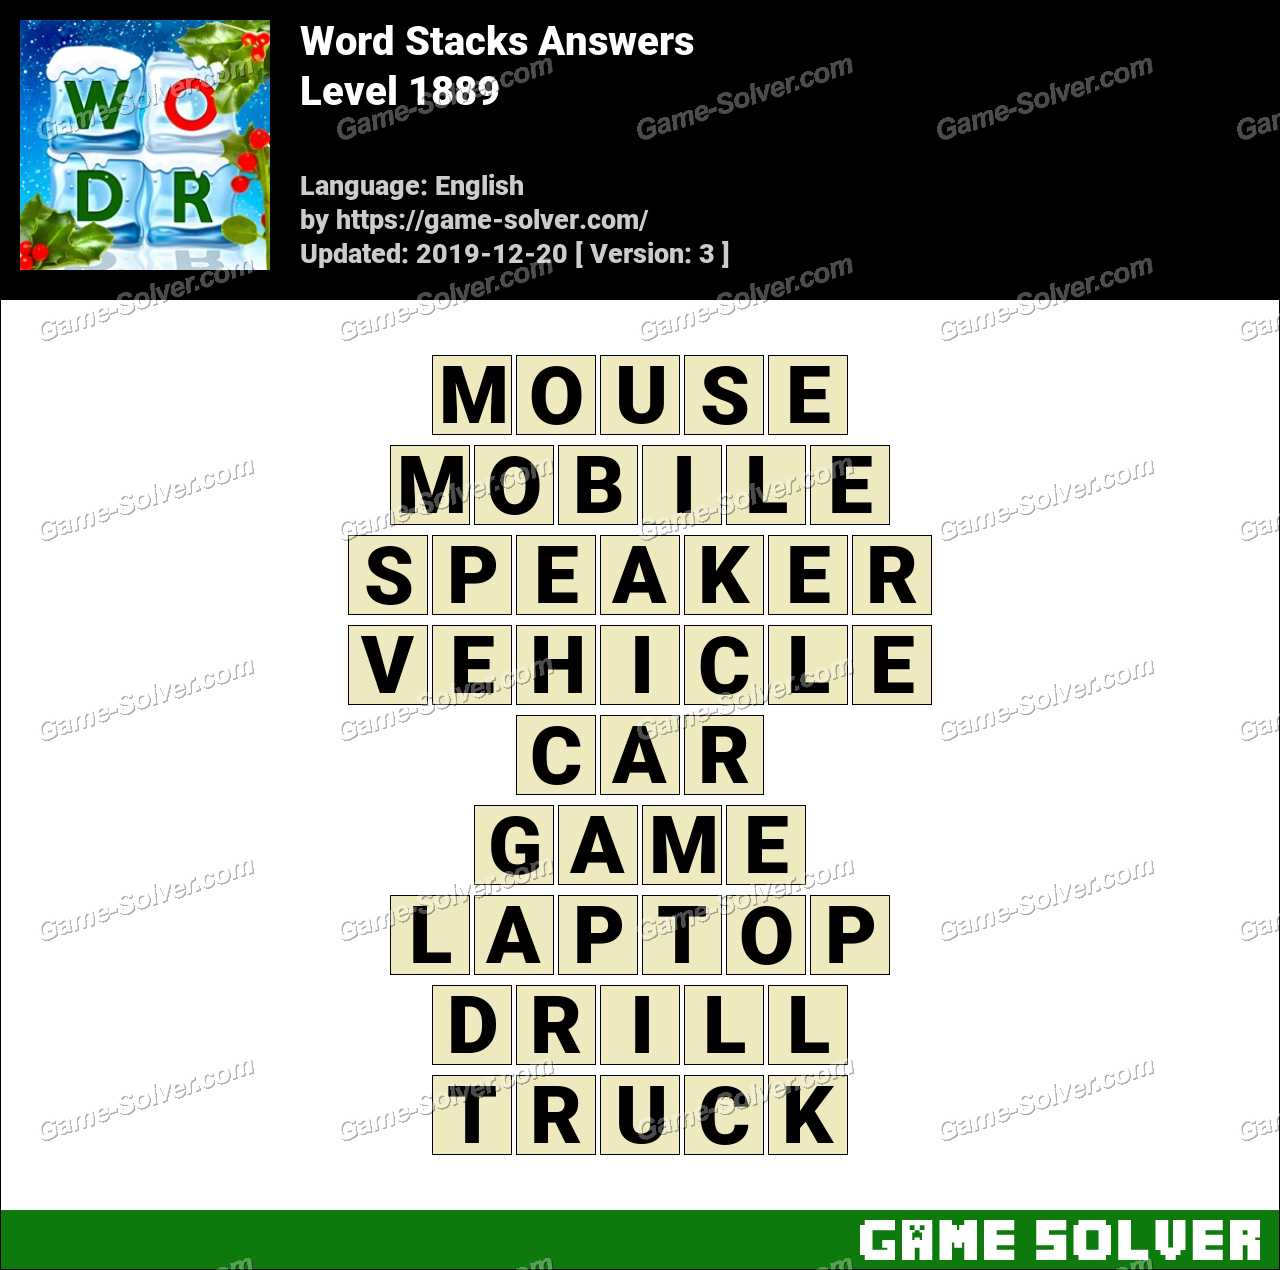 Word Stacks Level 1889 Answers